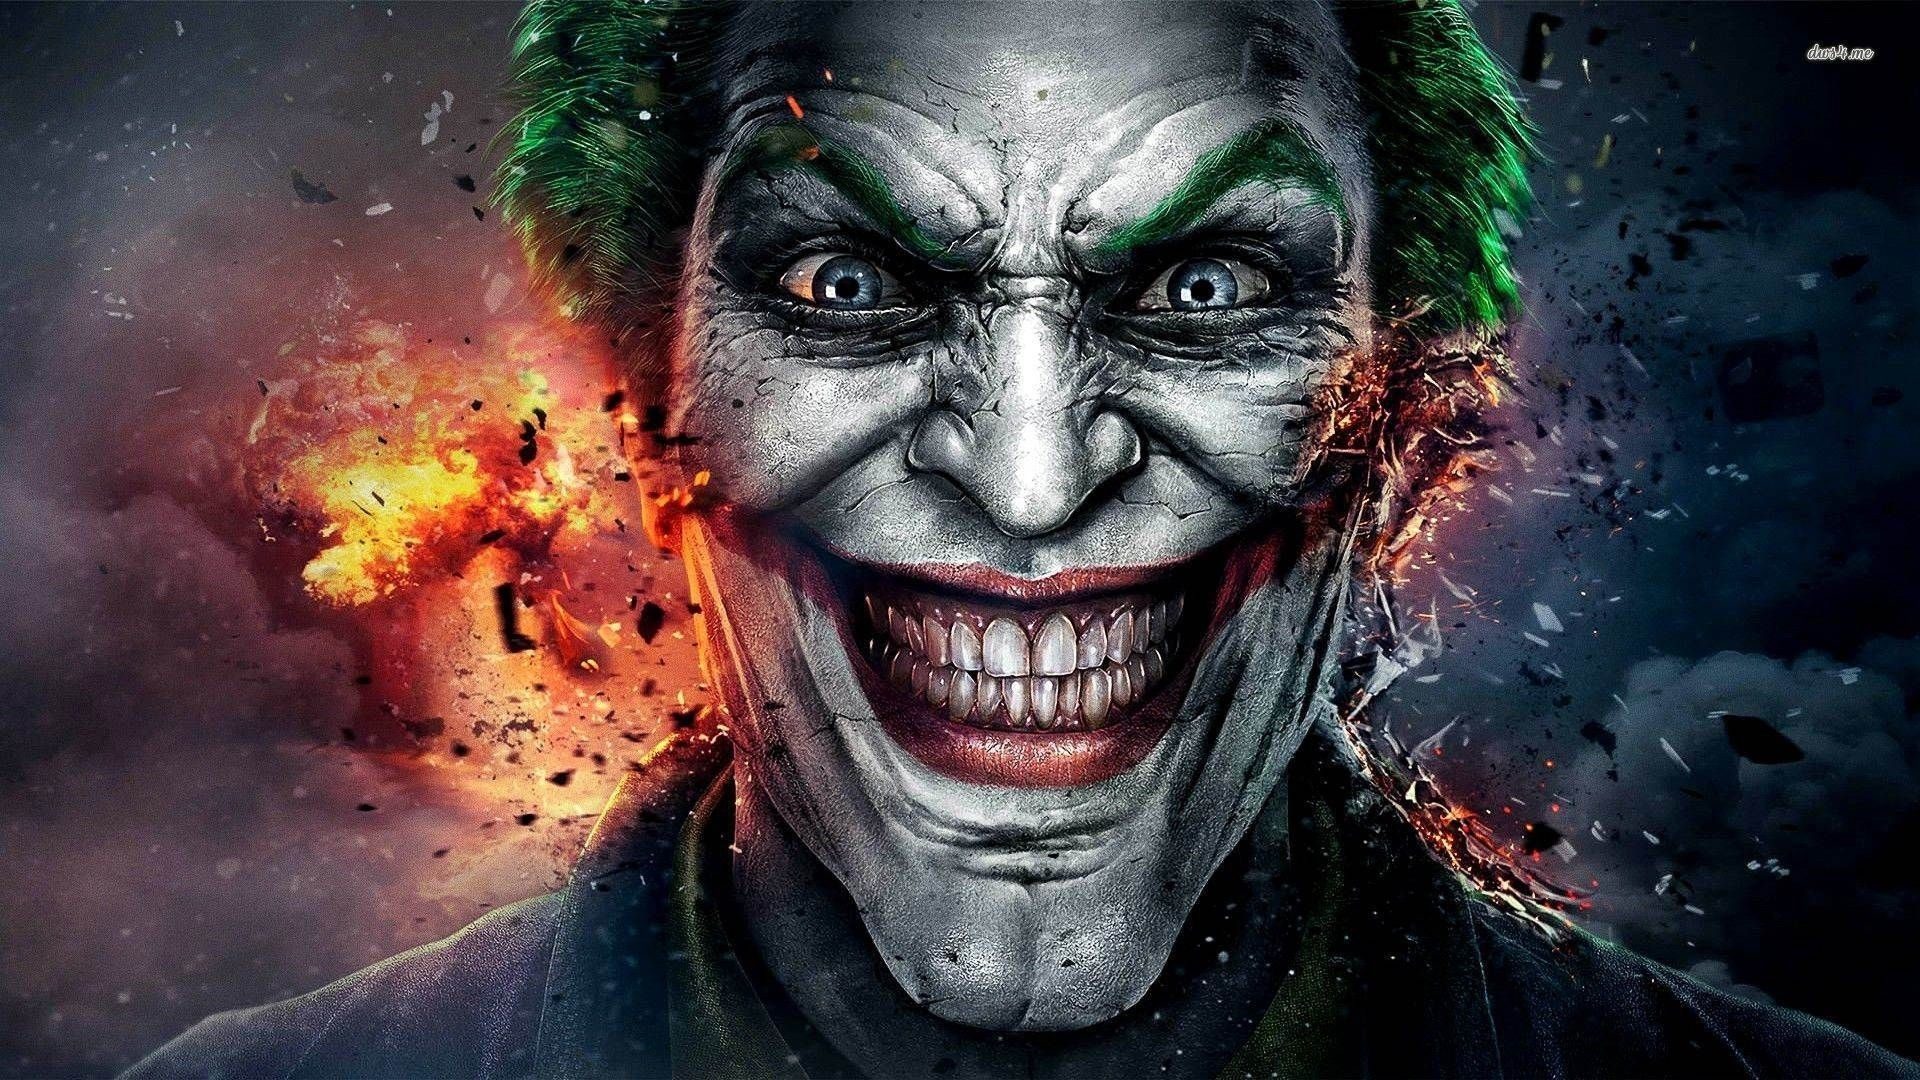 Res: 1920x1080, Dark Knight Joker Wallpaper Hd